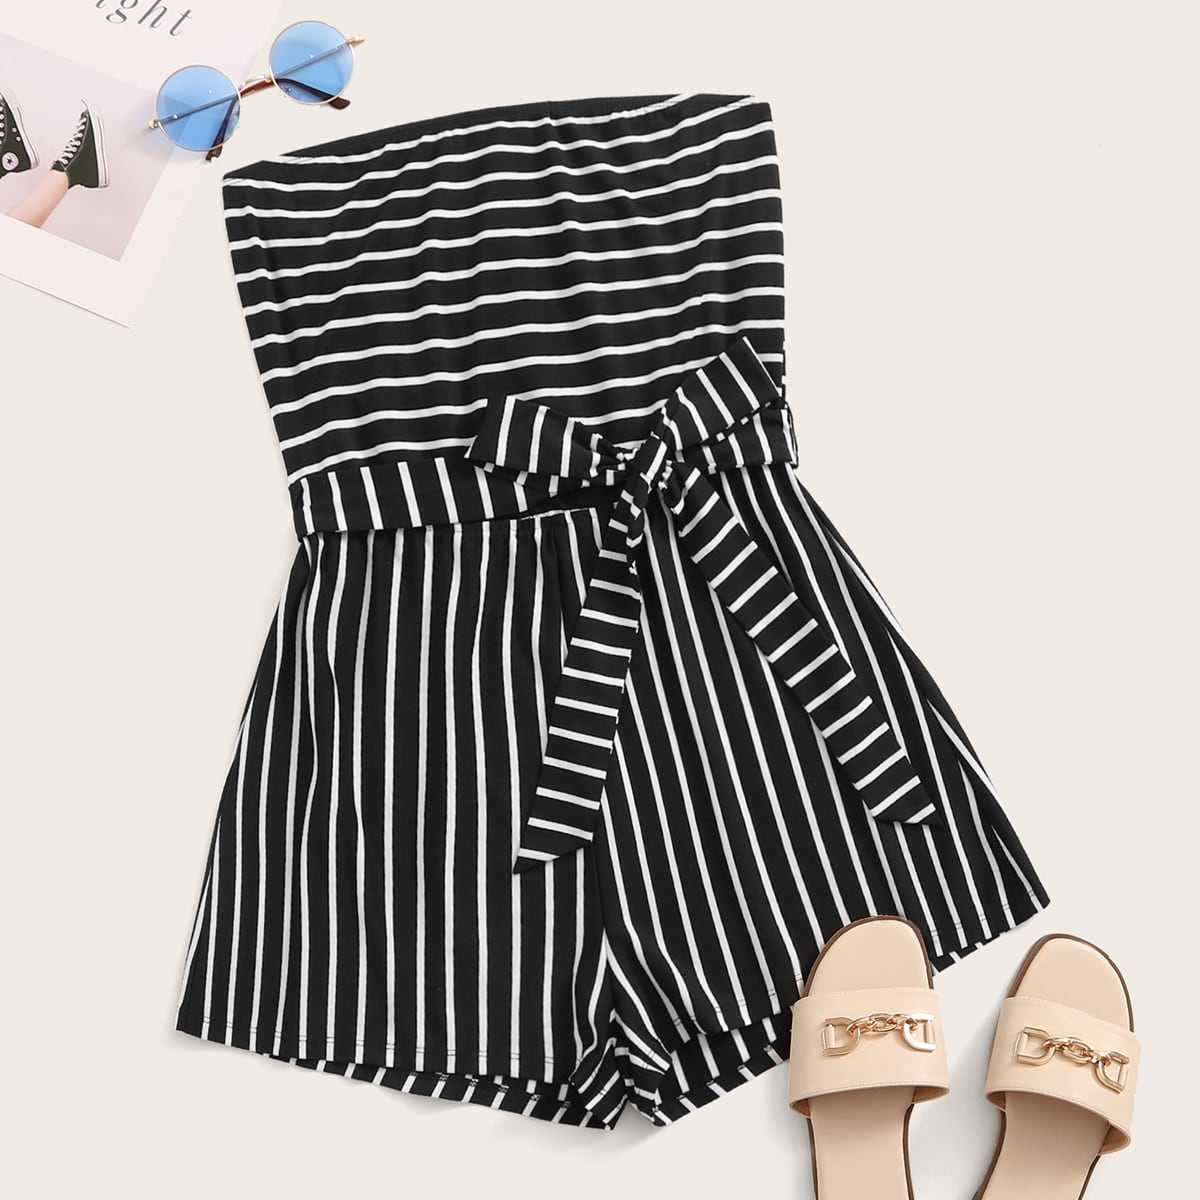 Self Belted Striped Tube Romper in Black by ROMWE on GOOFASH